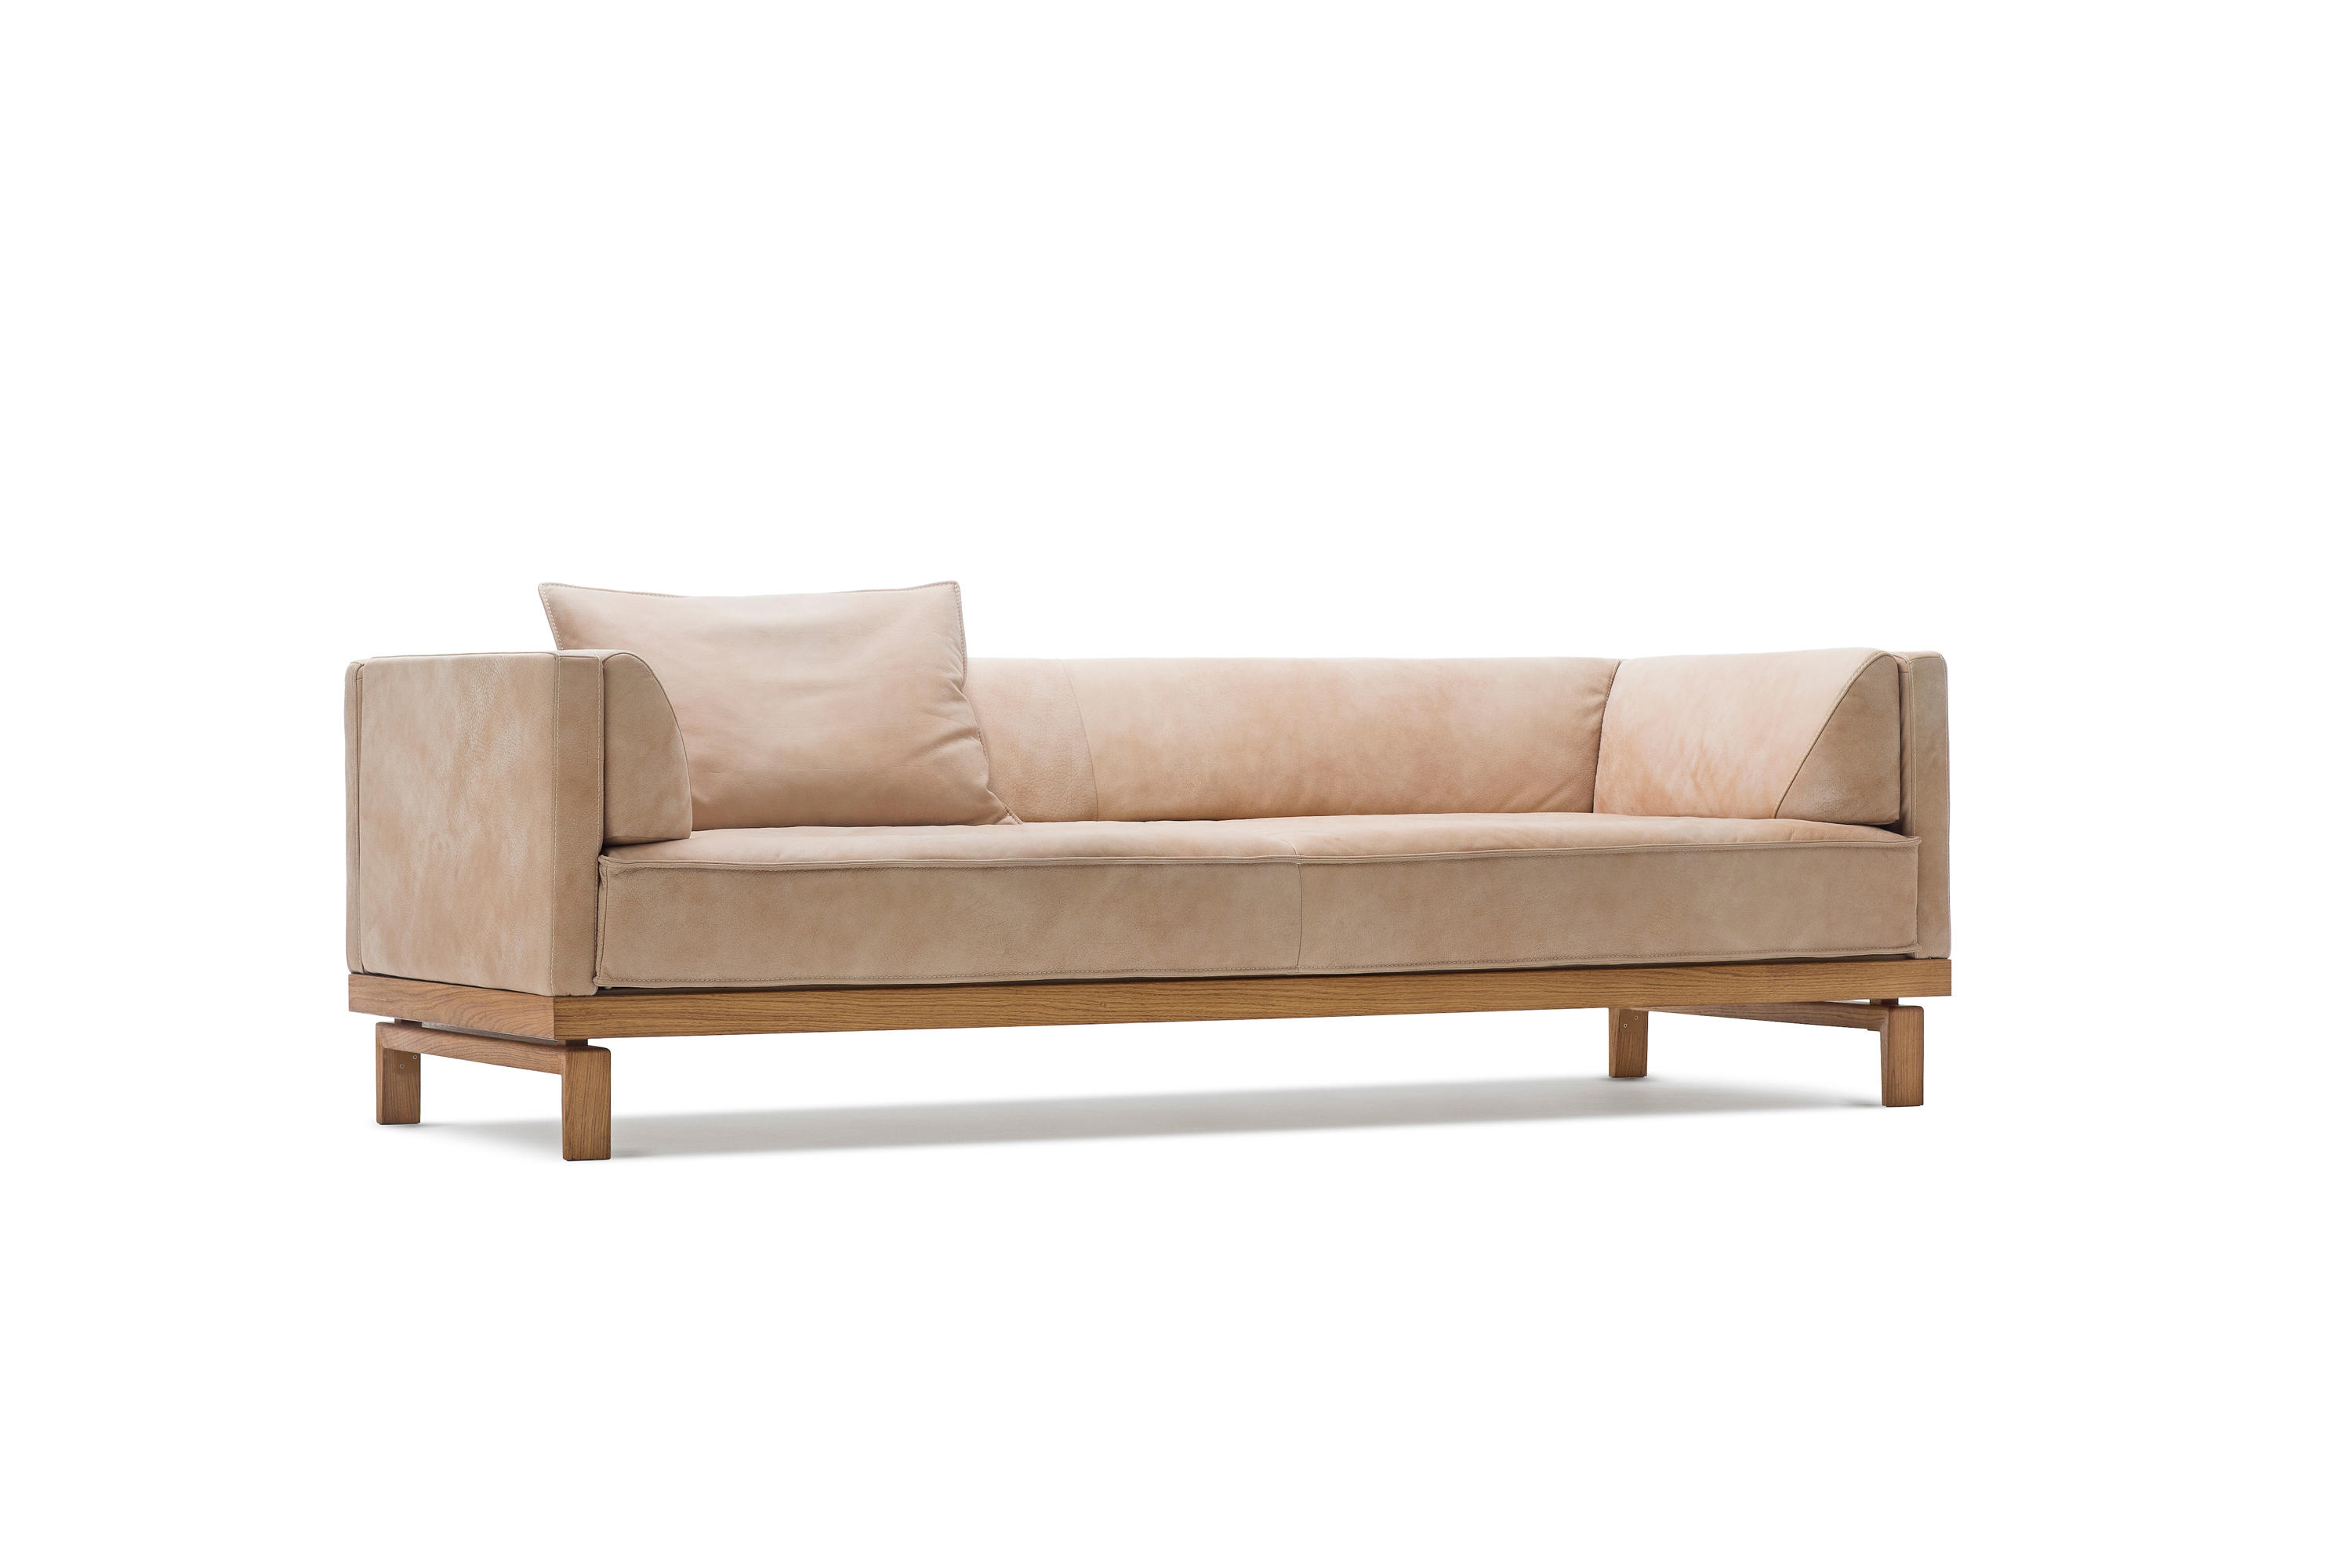 difference between couch sofa and chair ashley red leather relax himolla echtleder polster sessel